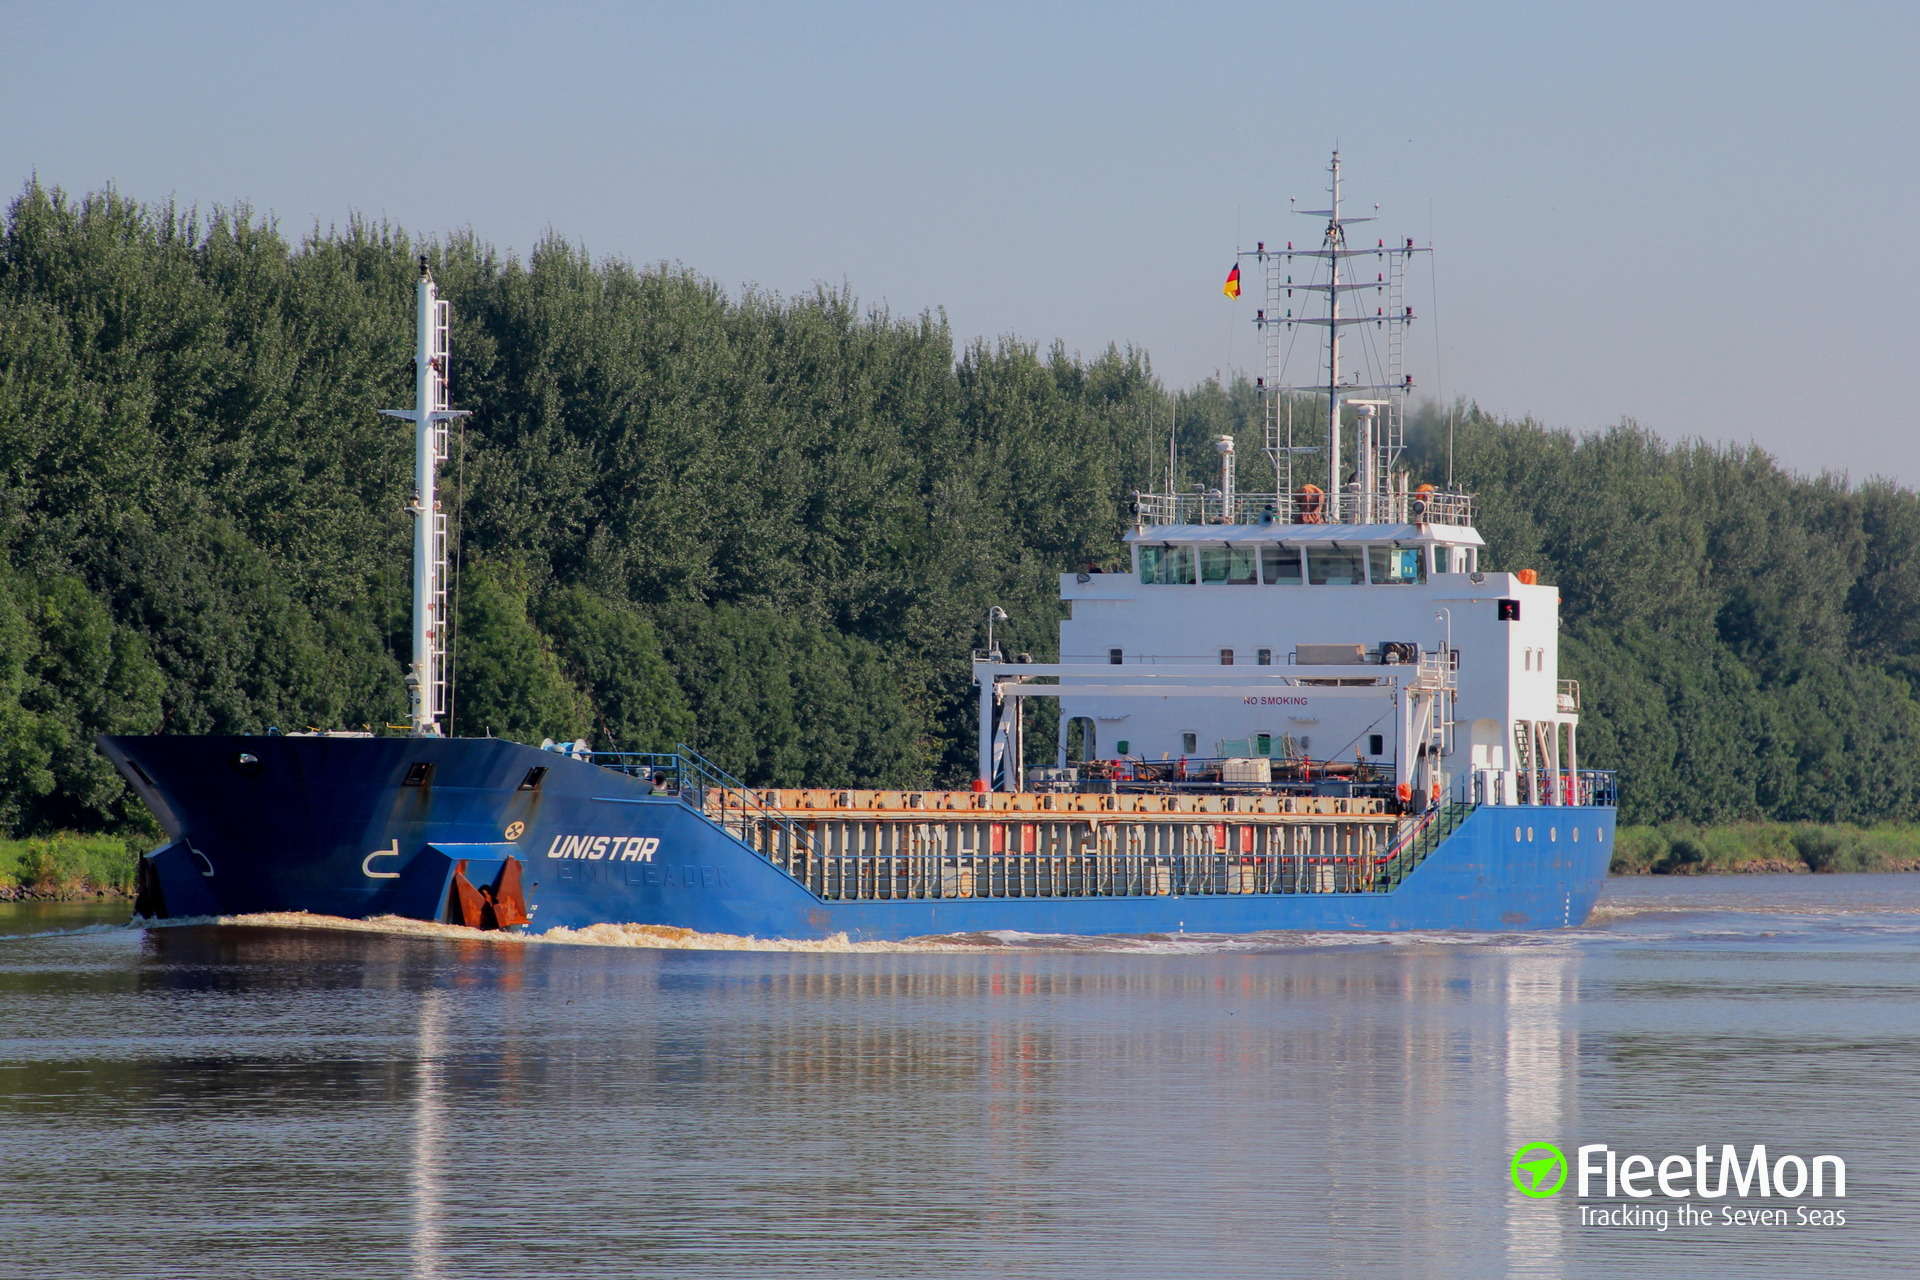 General cargo vessel Unistar grounding, Sweden